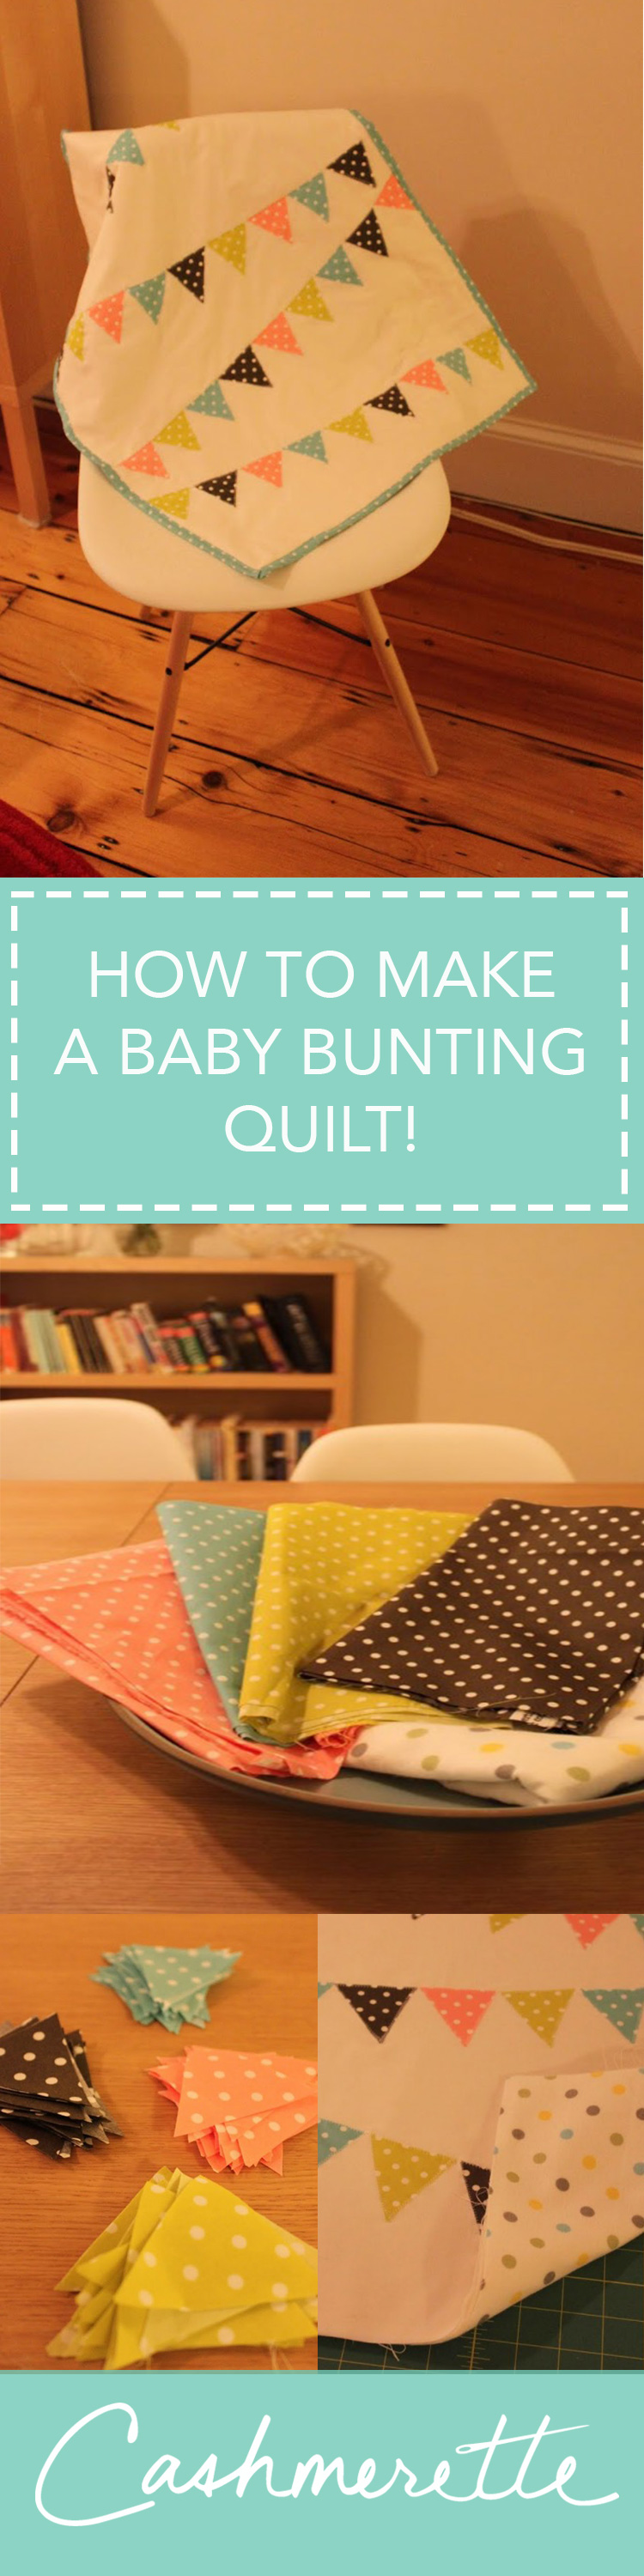 How to make an easy baby bunting applique quilt